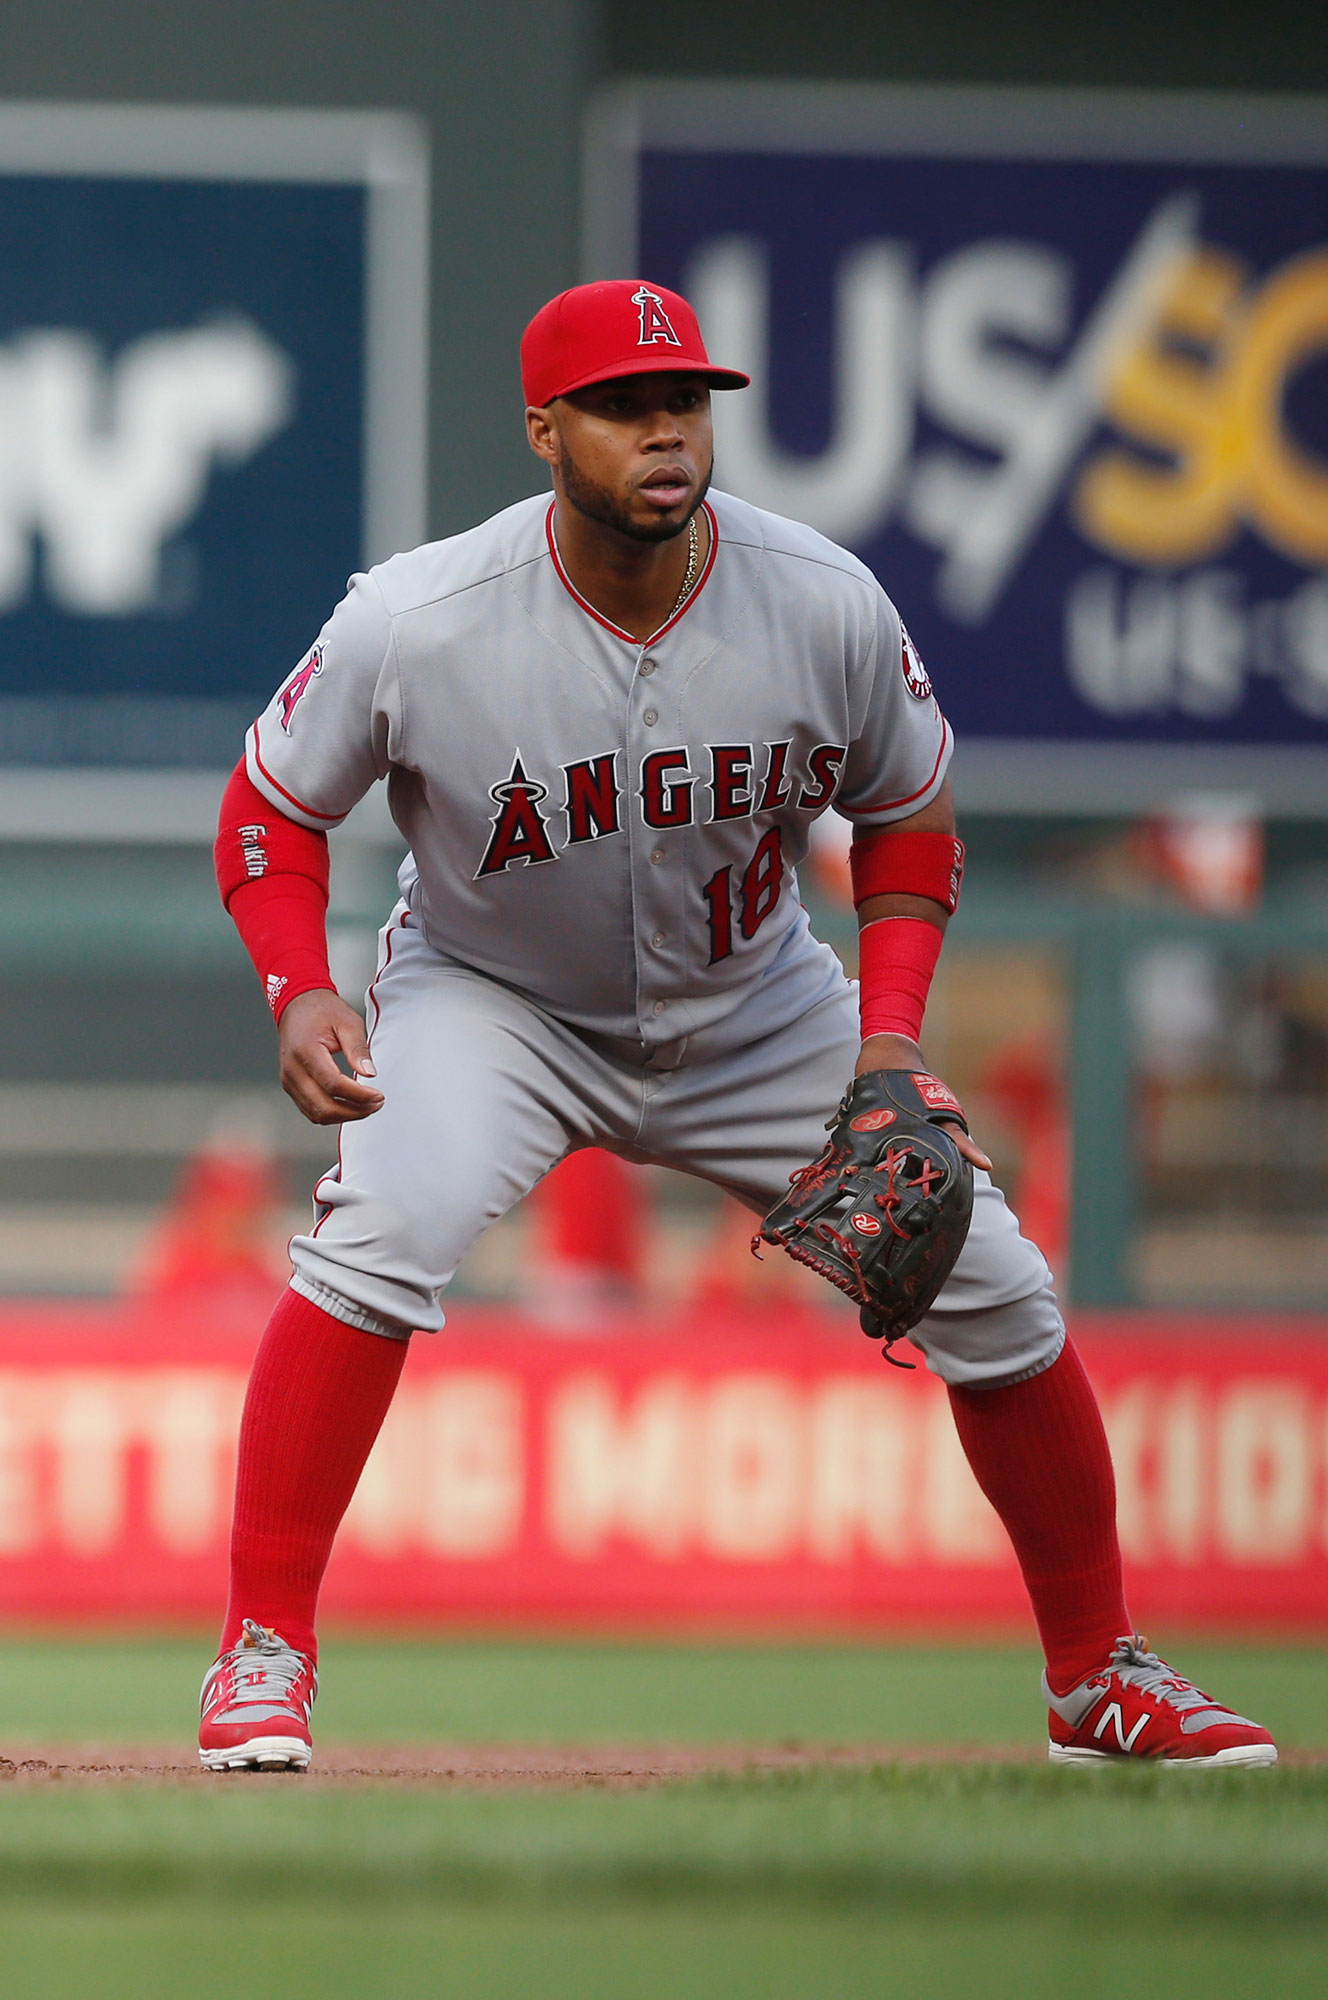 "<div class=""meta image-caption""><div class=""origin-logo origin-image none""><span>none</span></div><span class=""caption-text"">Luis Valbuena, a former MLB player who competed for 11 seasons, died in a car crash in Venezuela at age 33. (Jim Mone/AP Photo)</span></div>"